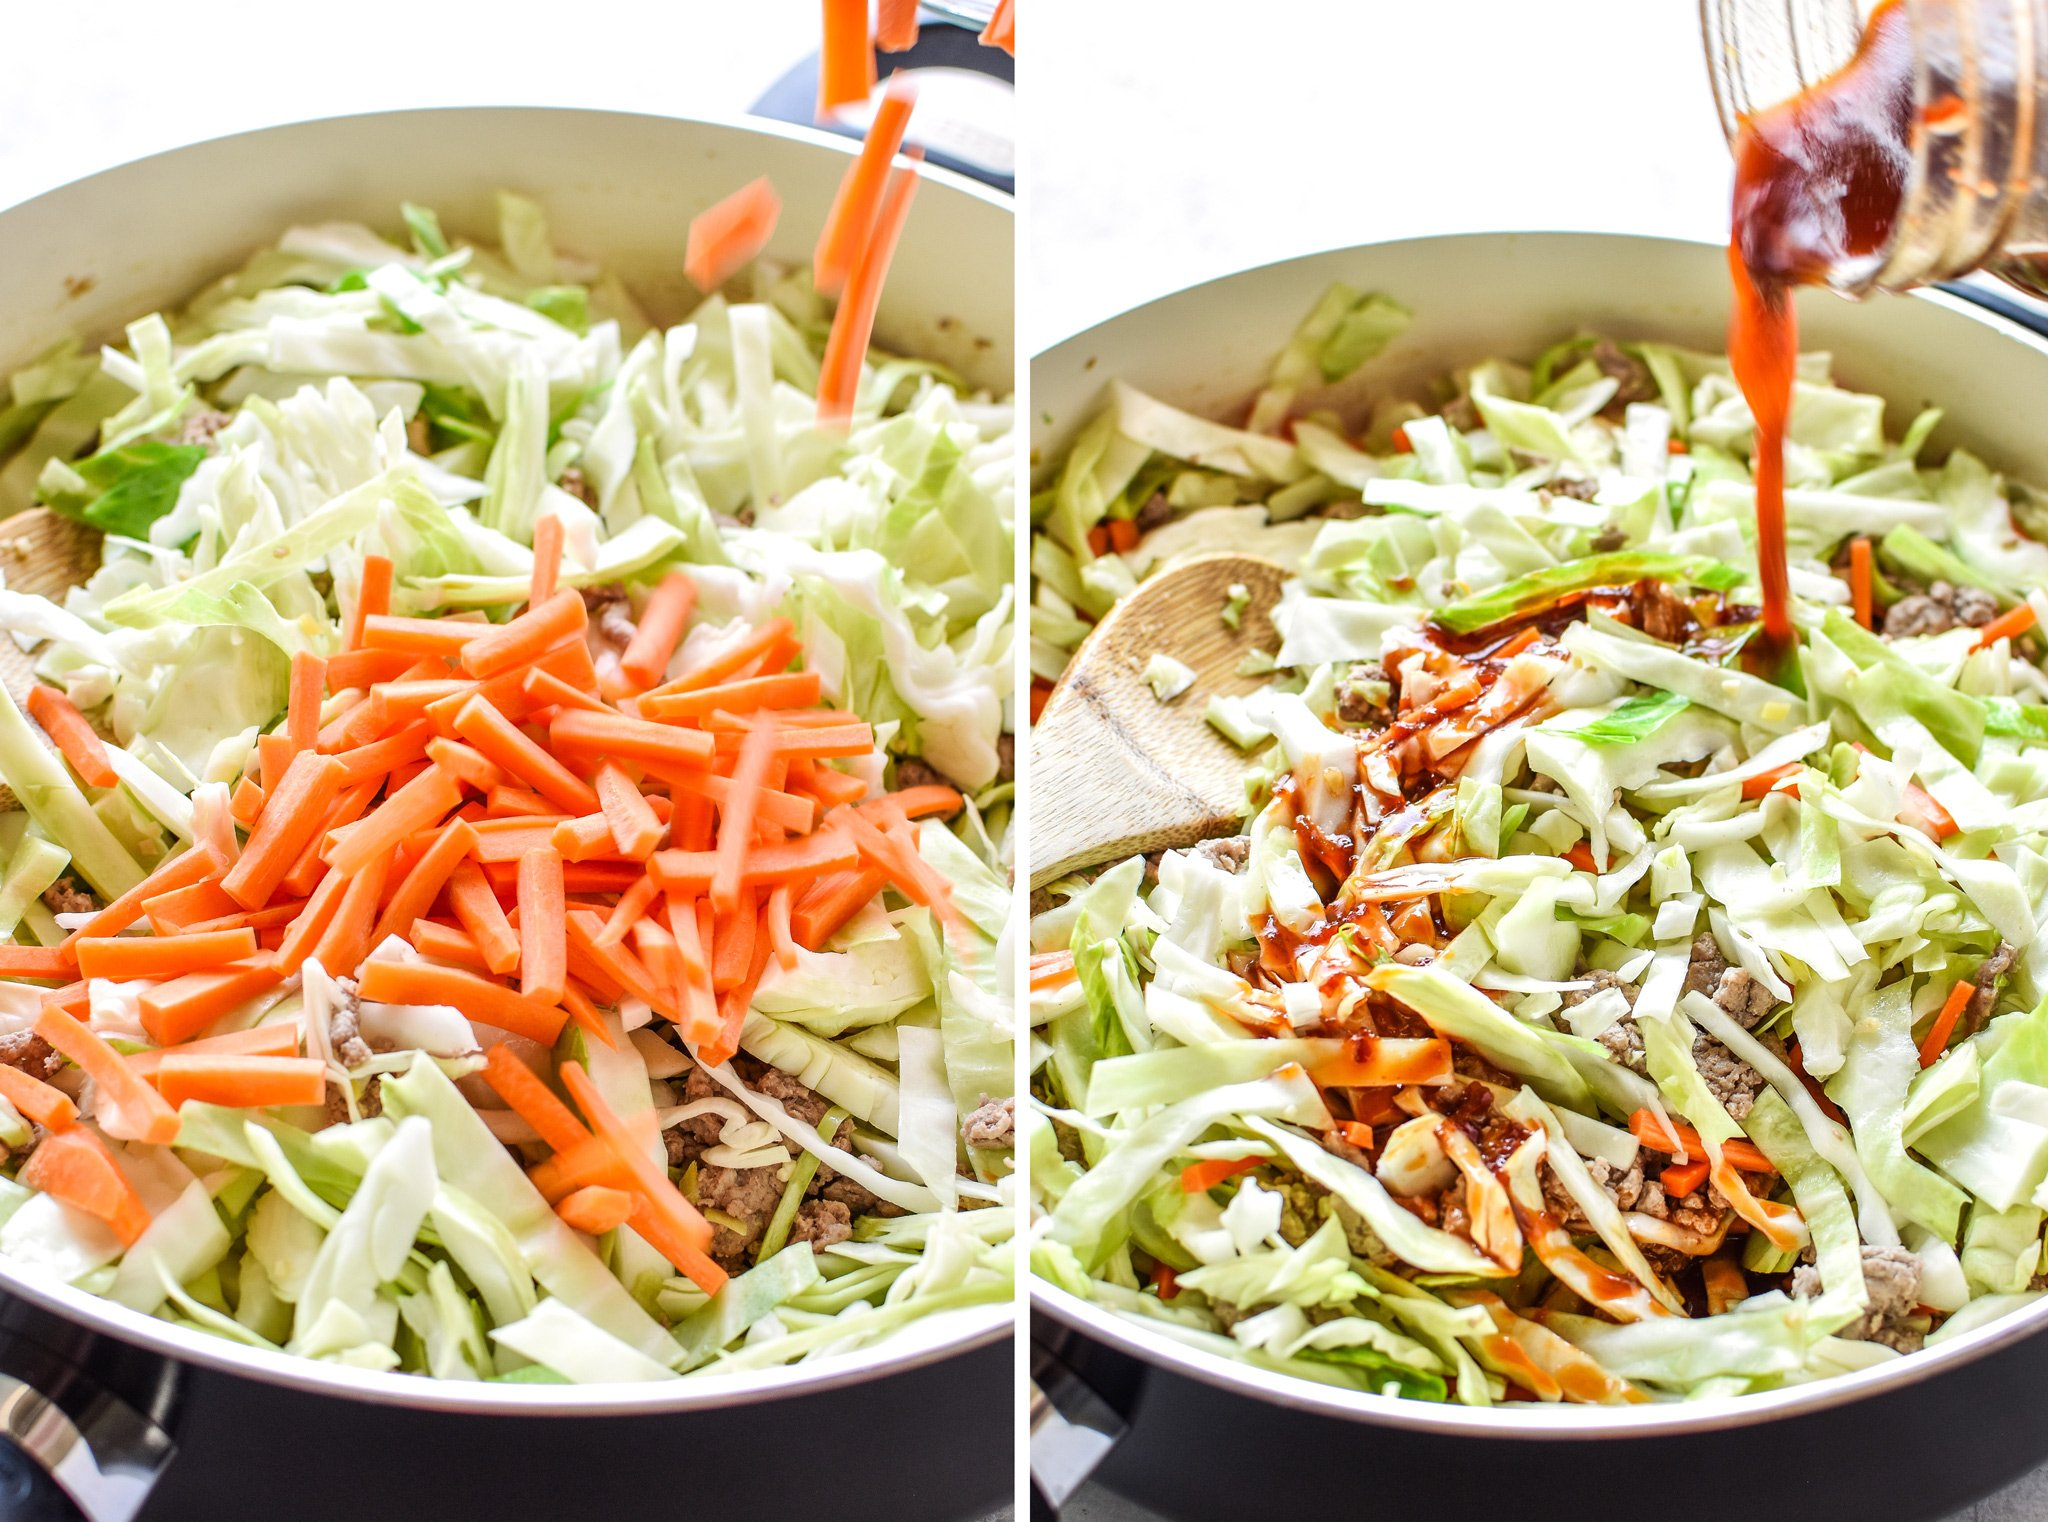 Left: Adding carrots to the pan. Right: Adding sauce mixture to the pan of spicy ground turkey & cabbage stir fry.